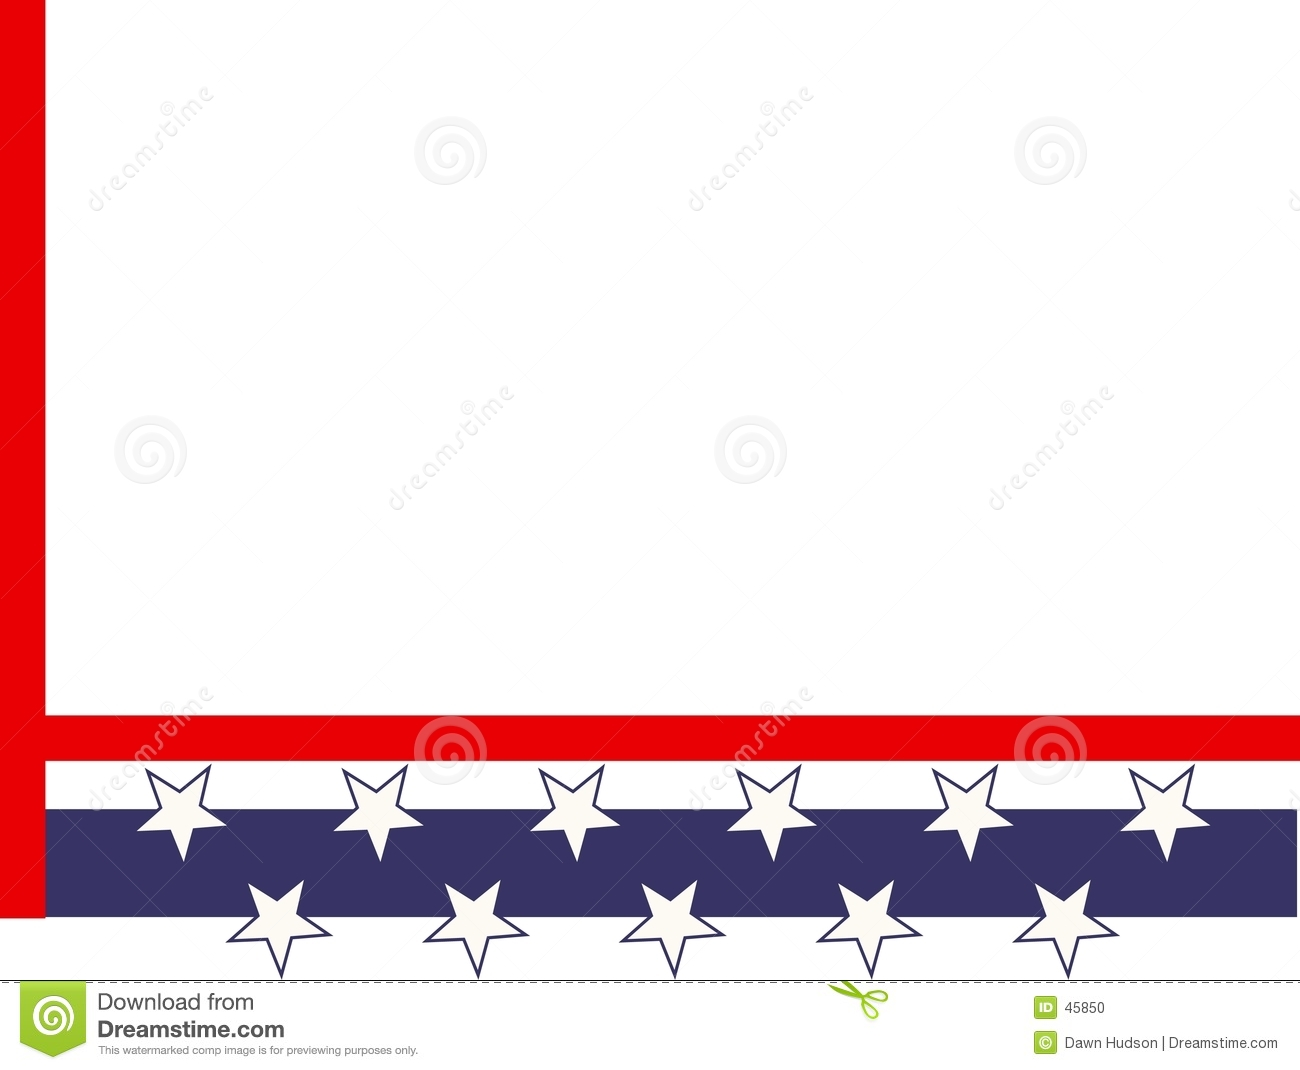 This Free Clip Art Stars And Stripes Borders Clip Art Is Available